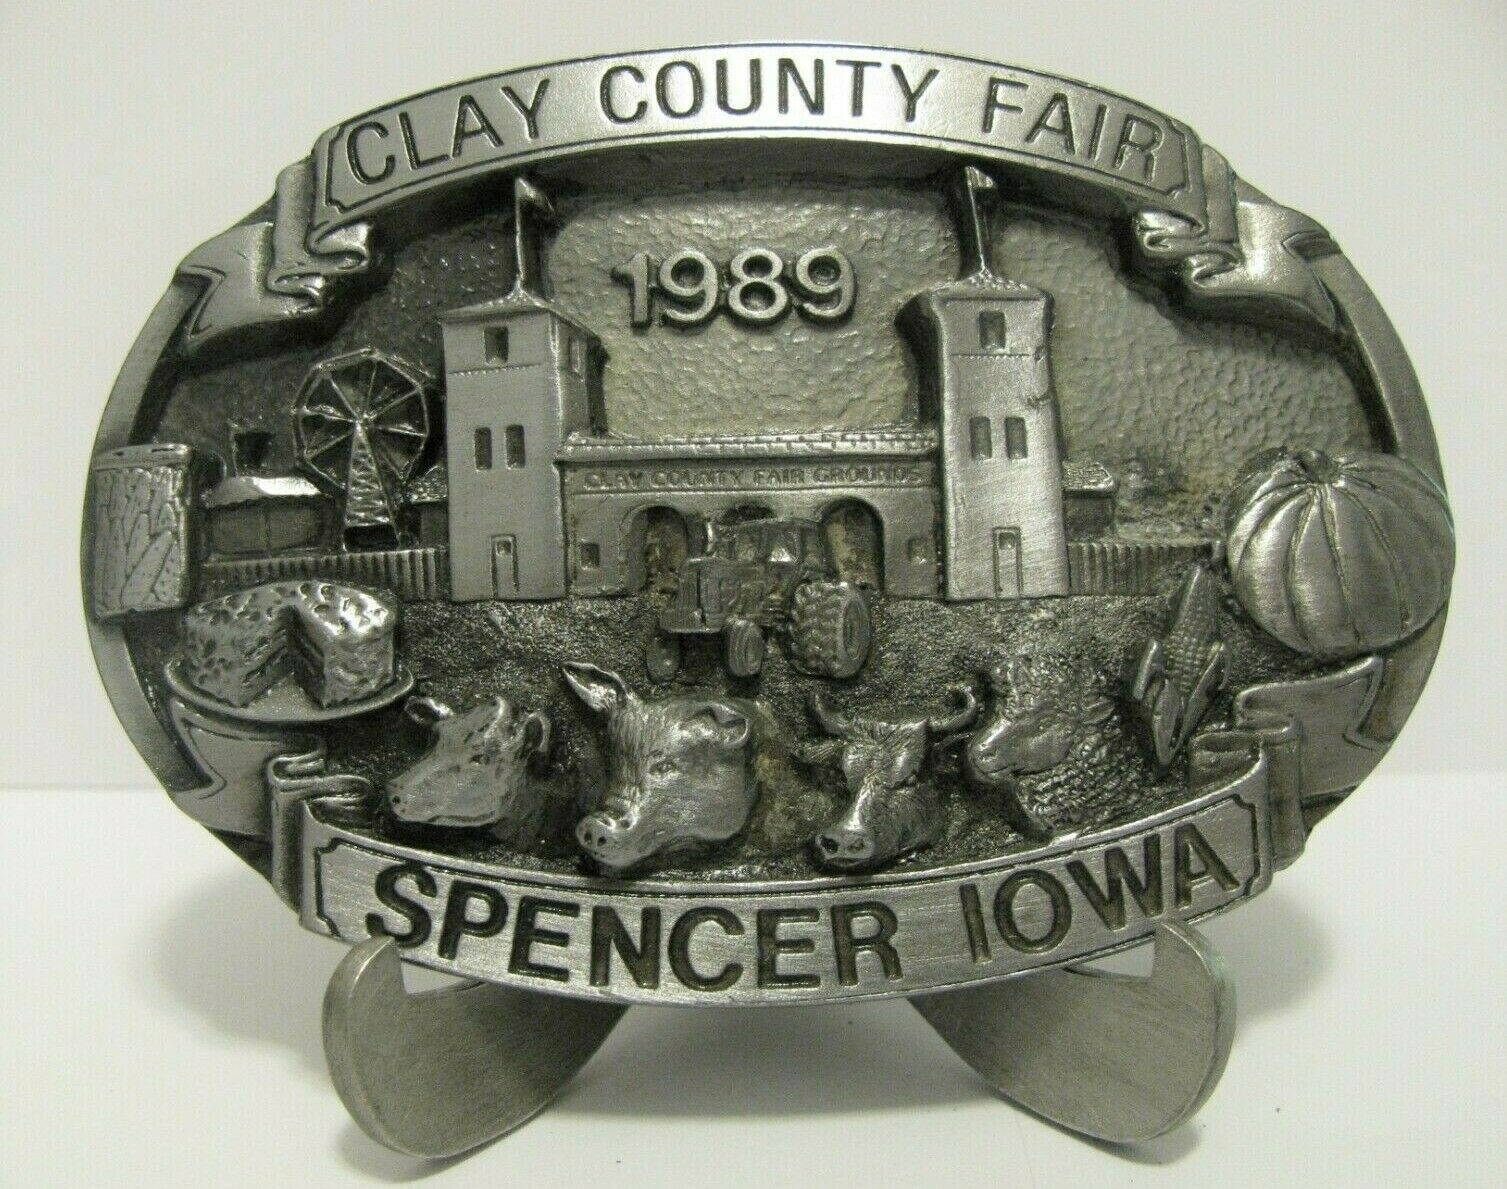 Clay County Fair Spencer Iowa 1989 Tractor Cow Pig Exhibitor Belt Buckle Ltd Ed